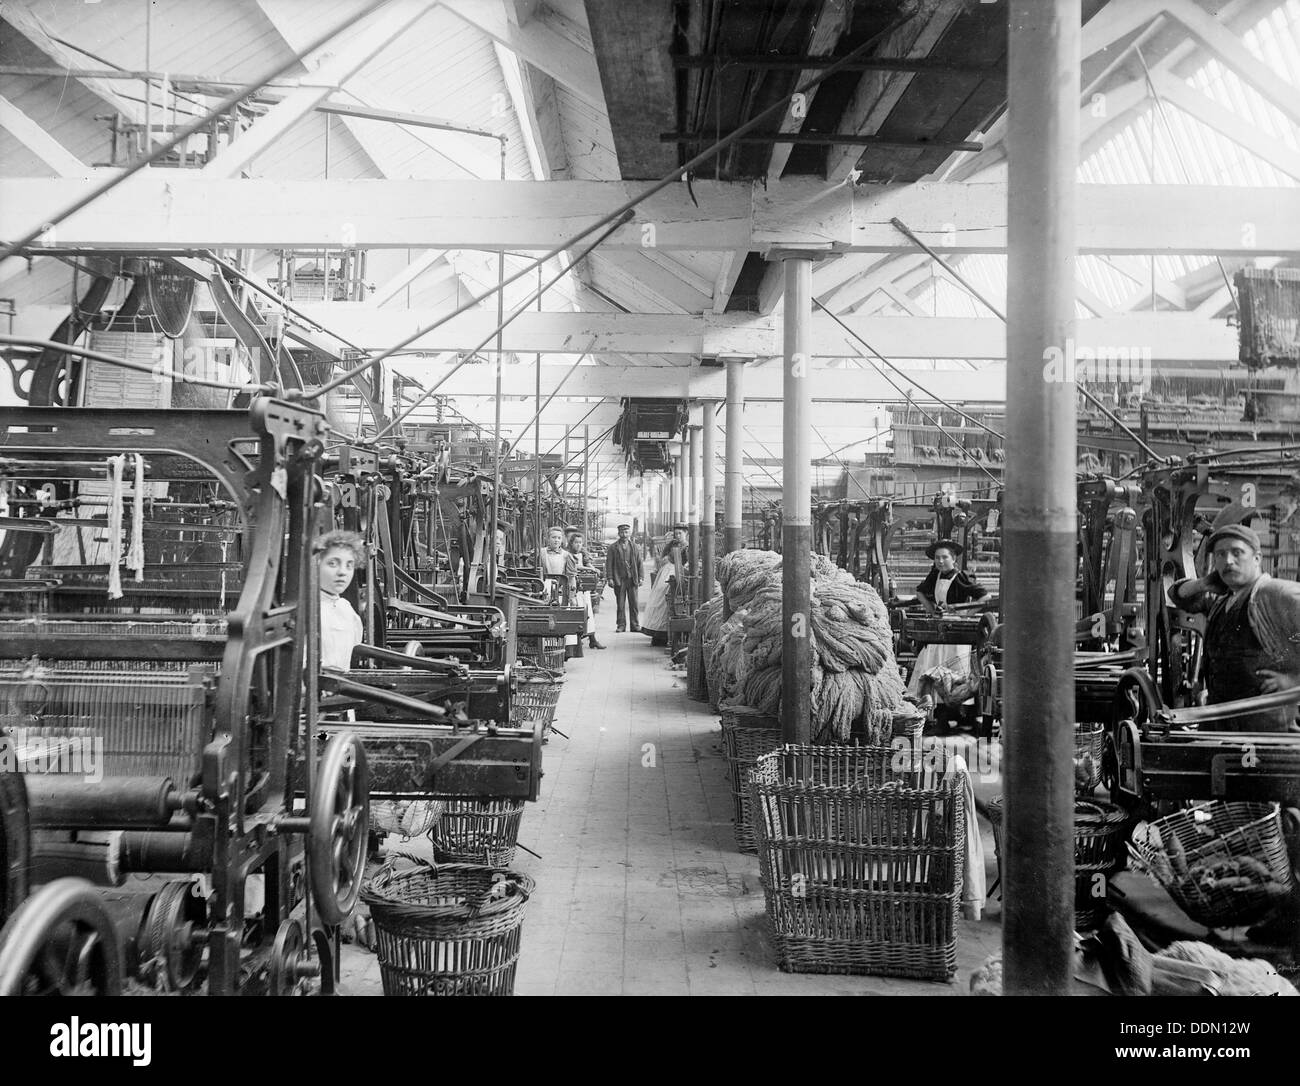 Early Blanket Factory, Witney, Oxfordshire, 1898. Artist: Henry Taunt - Stock Image